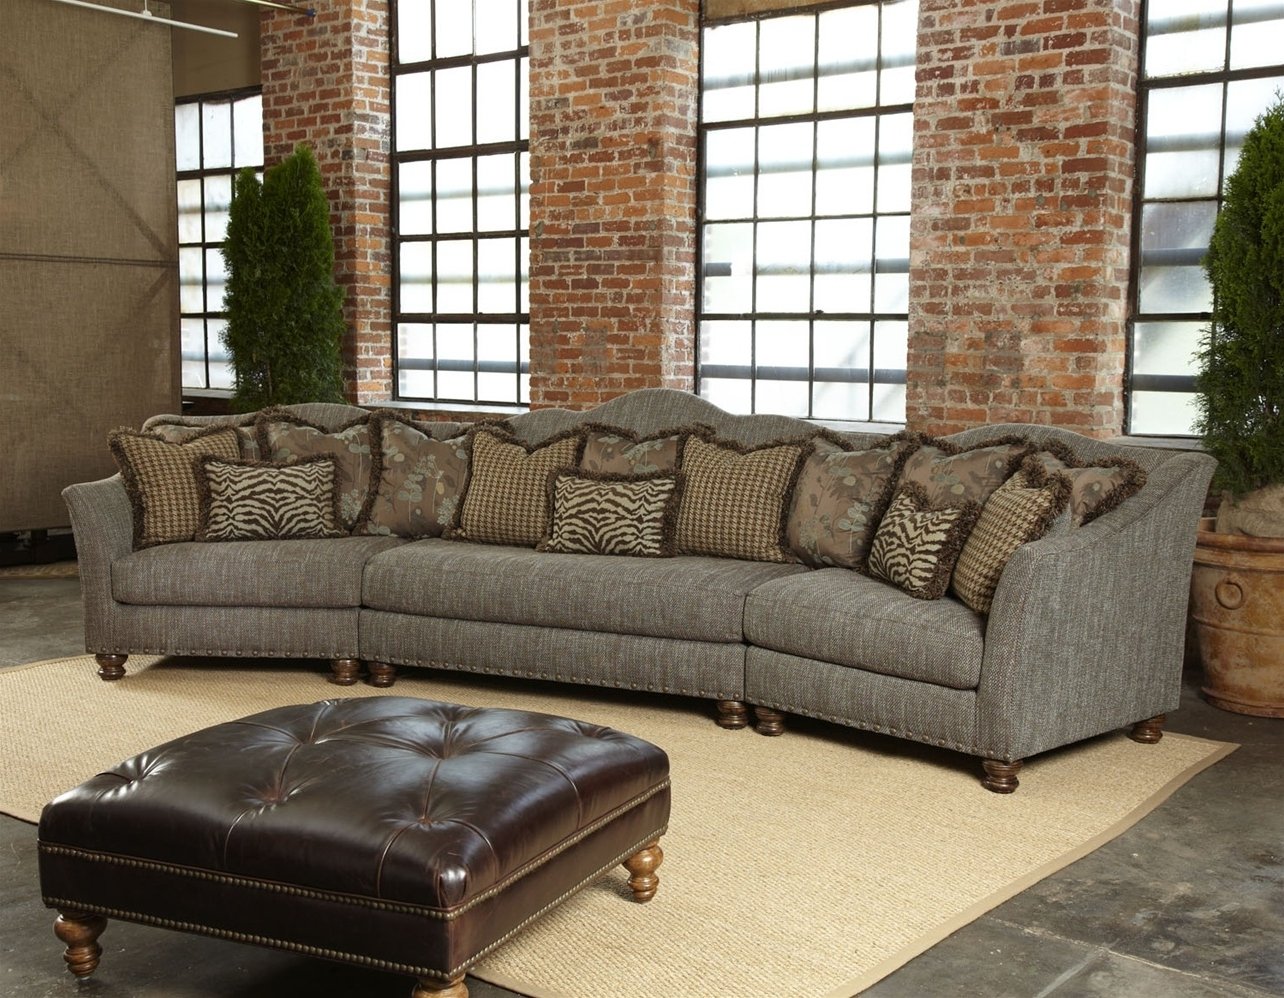 Rochester Ny Sectional Sofas In Fashionable Beautiful Curved Sectional Sofa With Chaise 38 For Your Sectional (View 18 of 20)